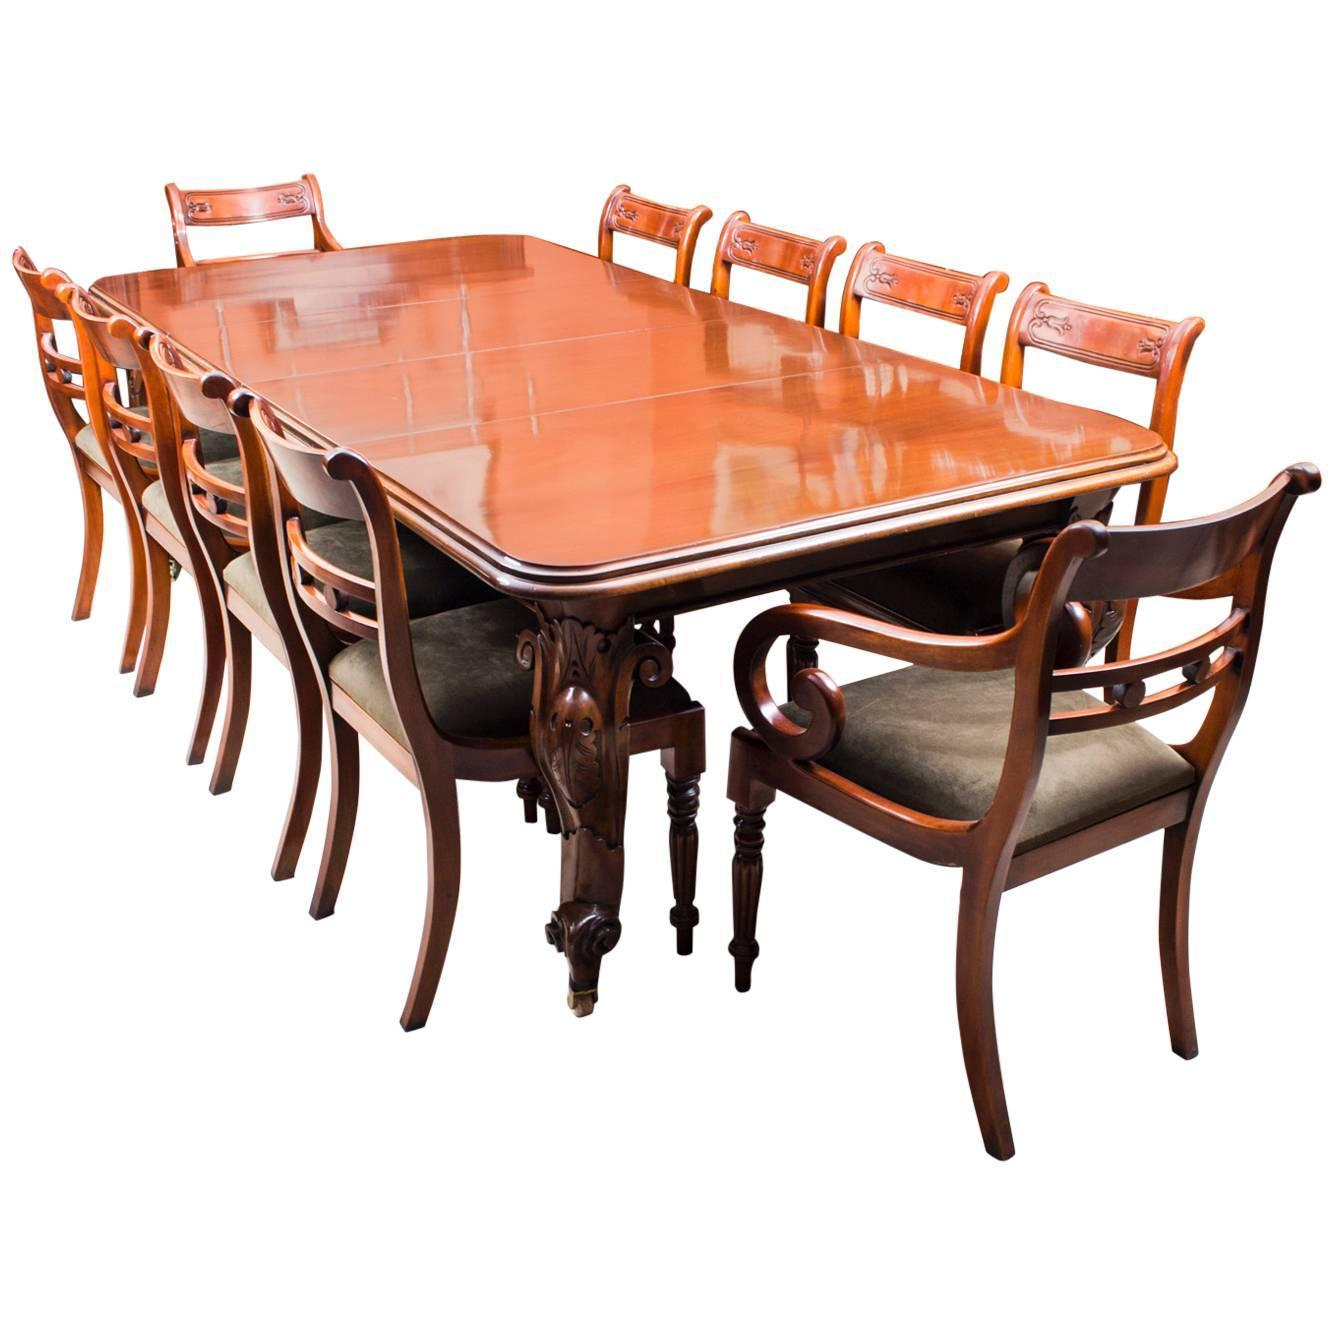 Dining Table Set For 10: Antique Victorian Dining